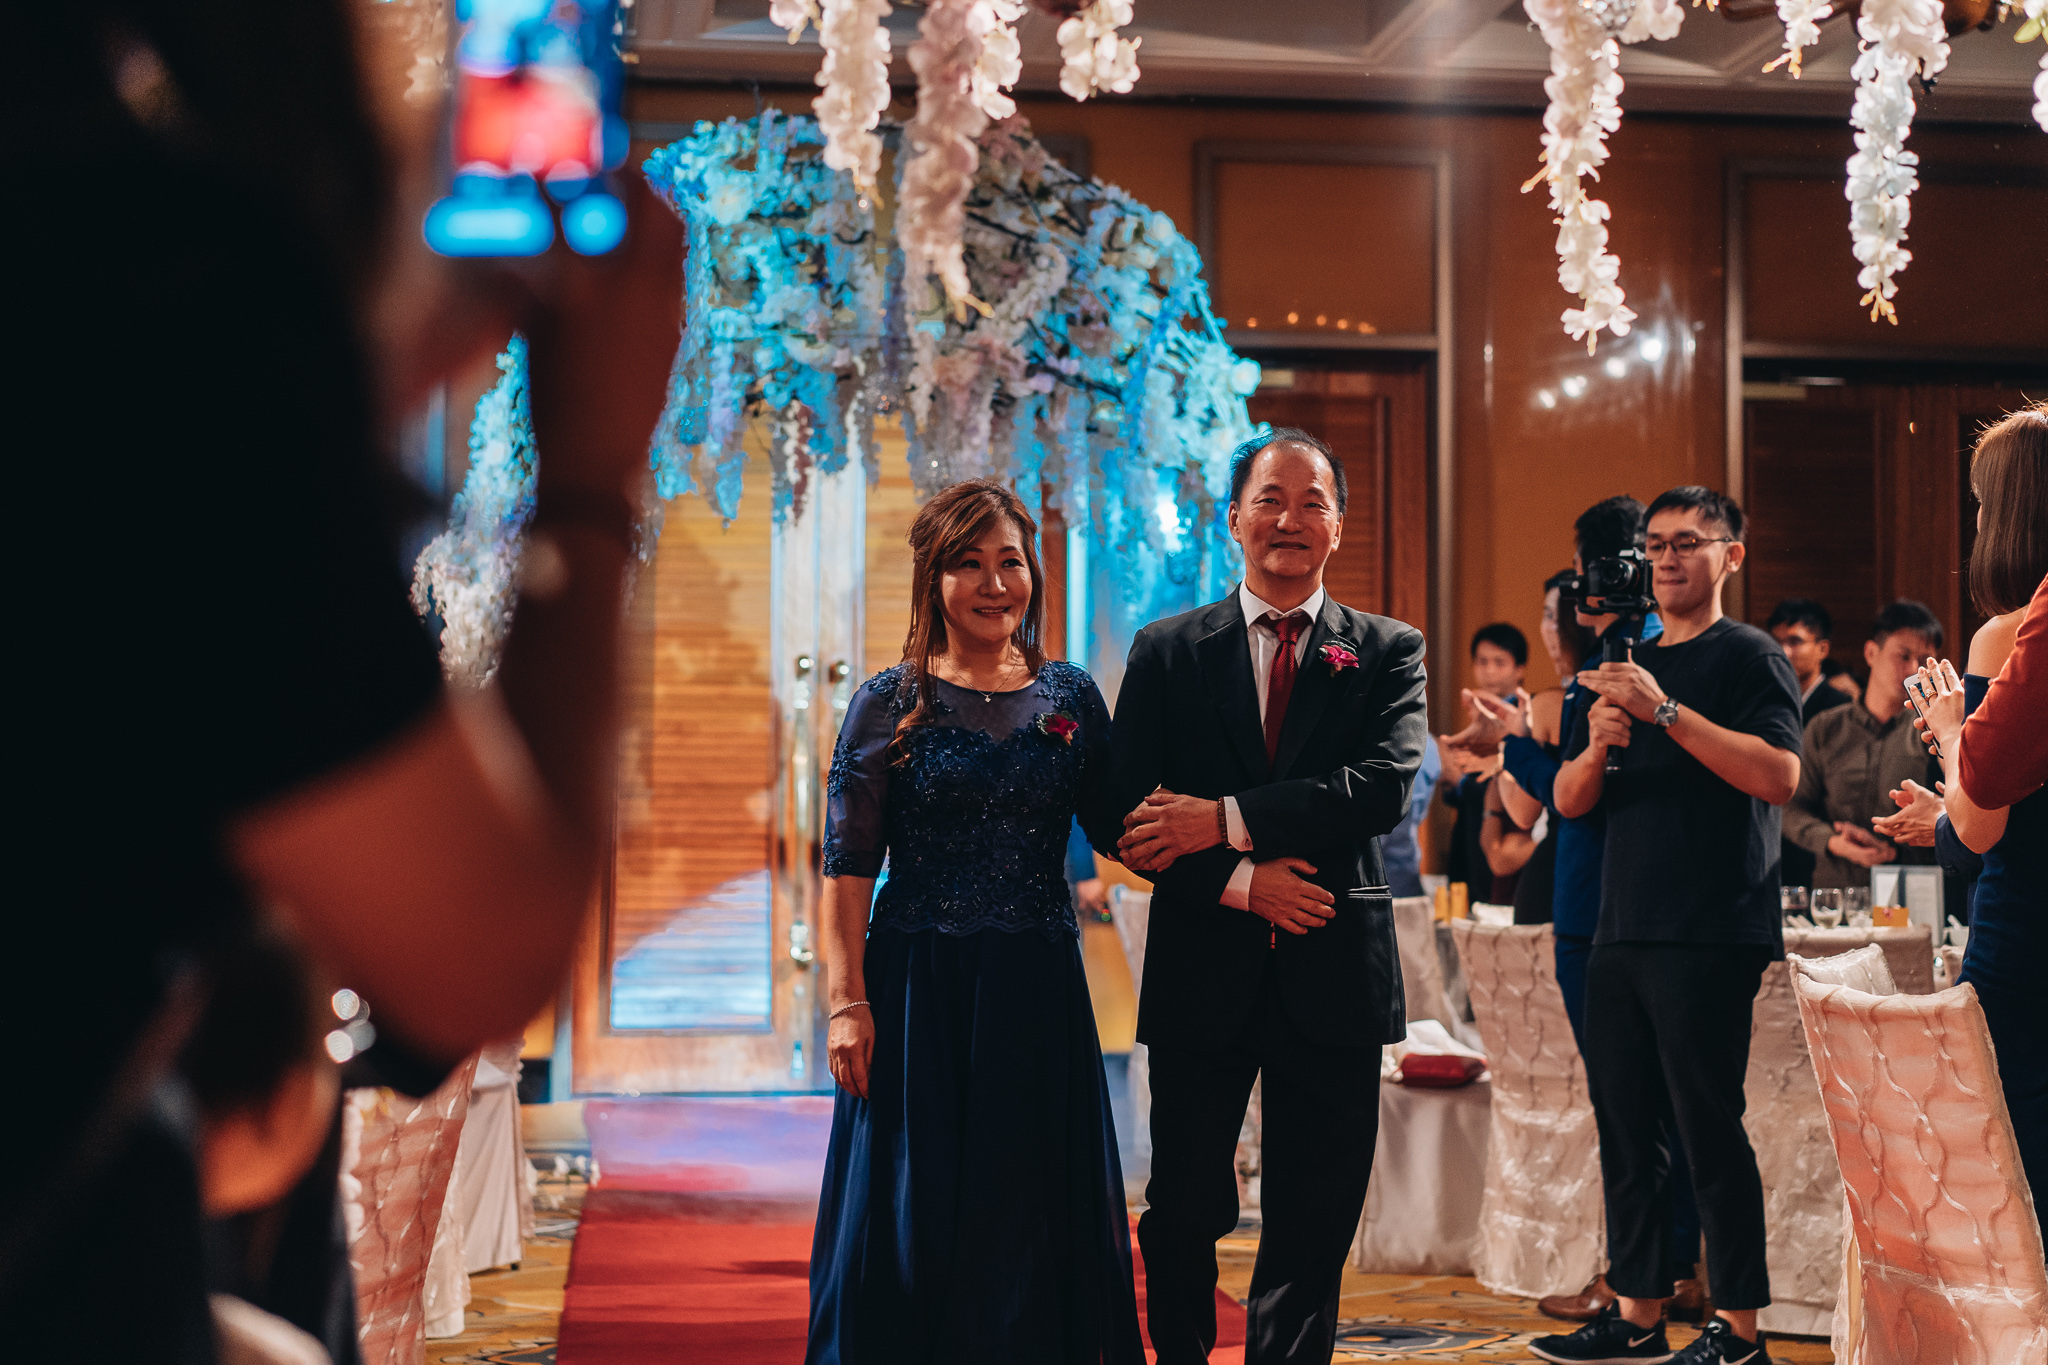 Cindy & Kevin Wedding Day Highlights (resized for sharing) - 184.jpg